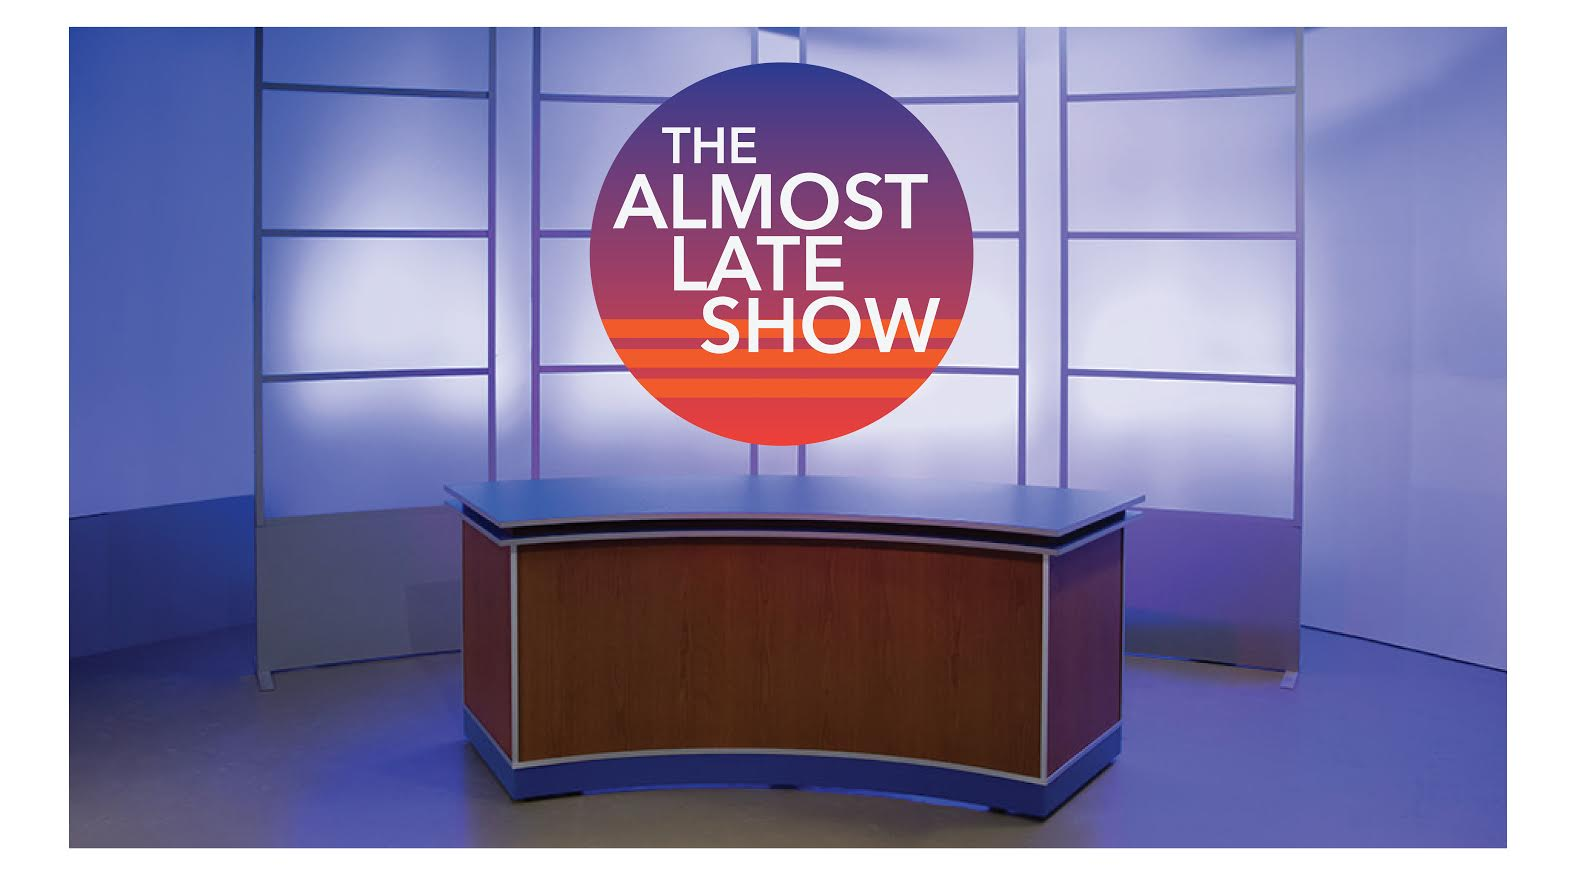 The Almost Late Show